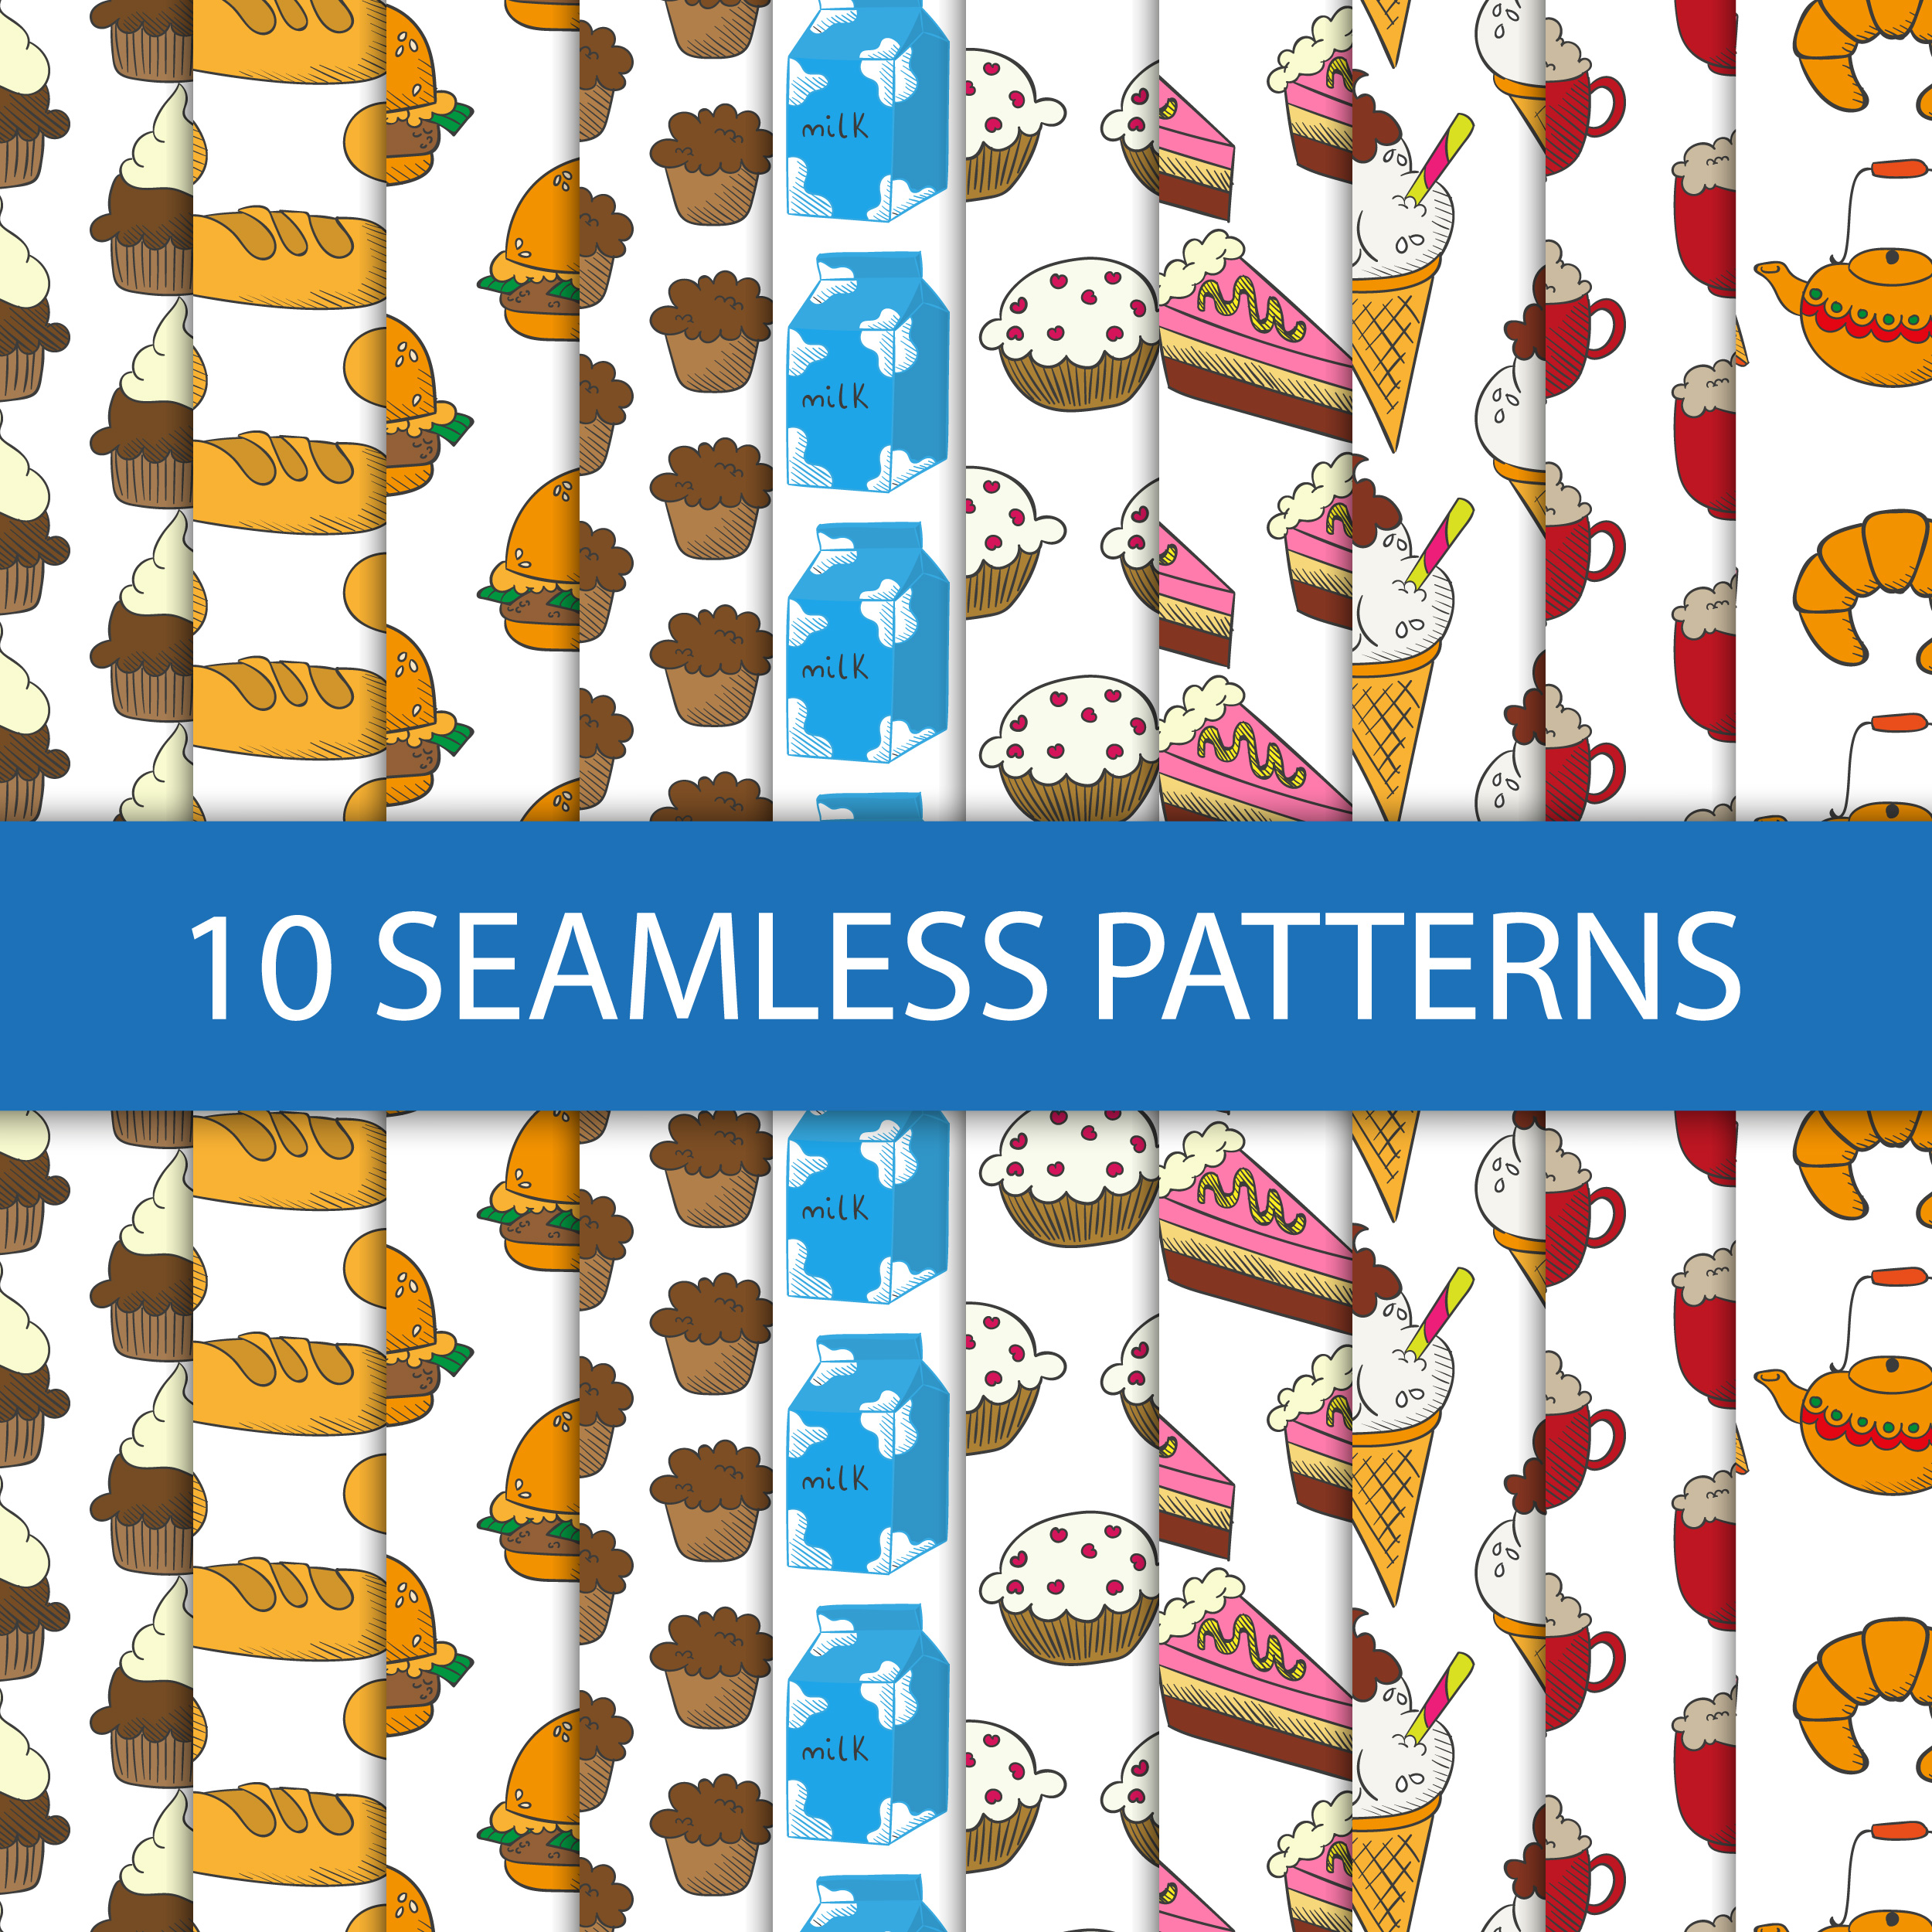 Seamless patterns with food Photoshop brush